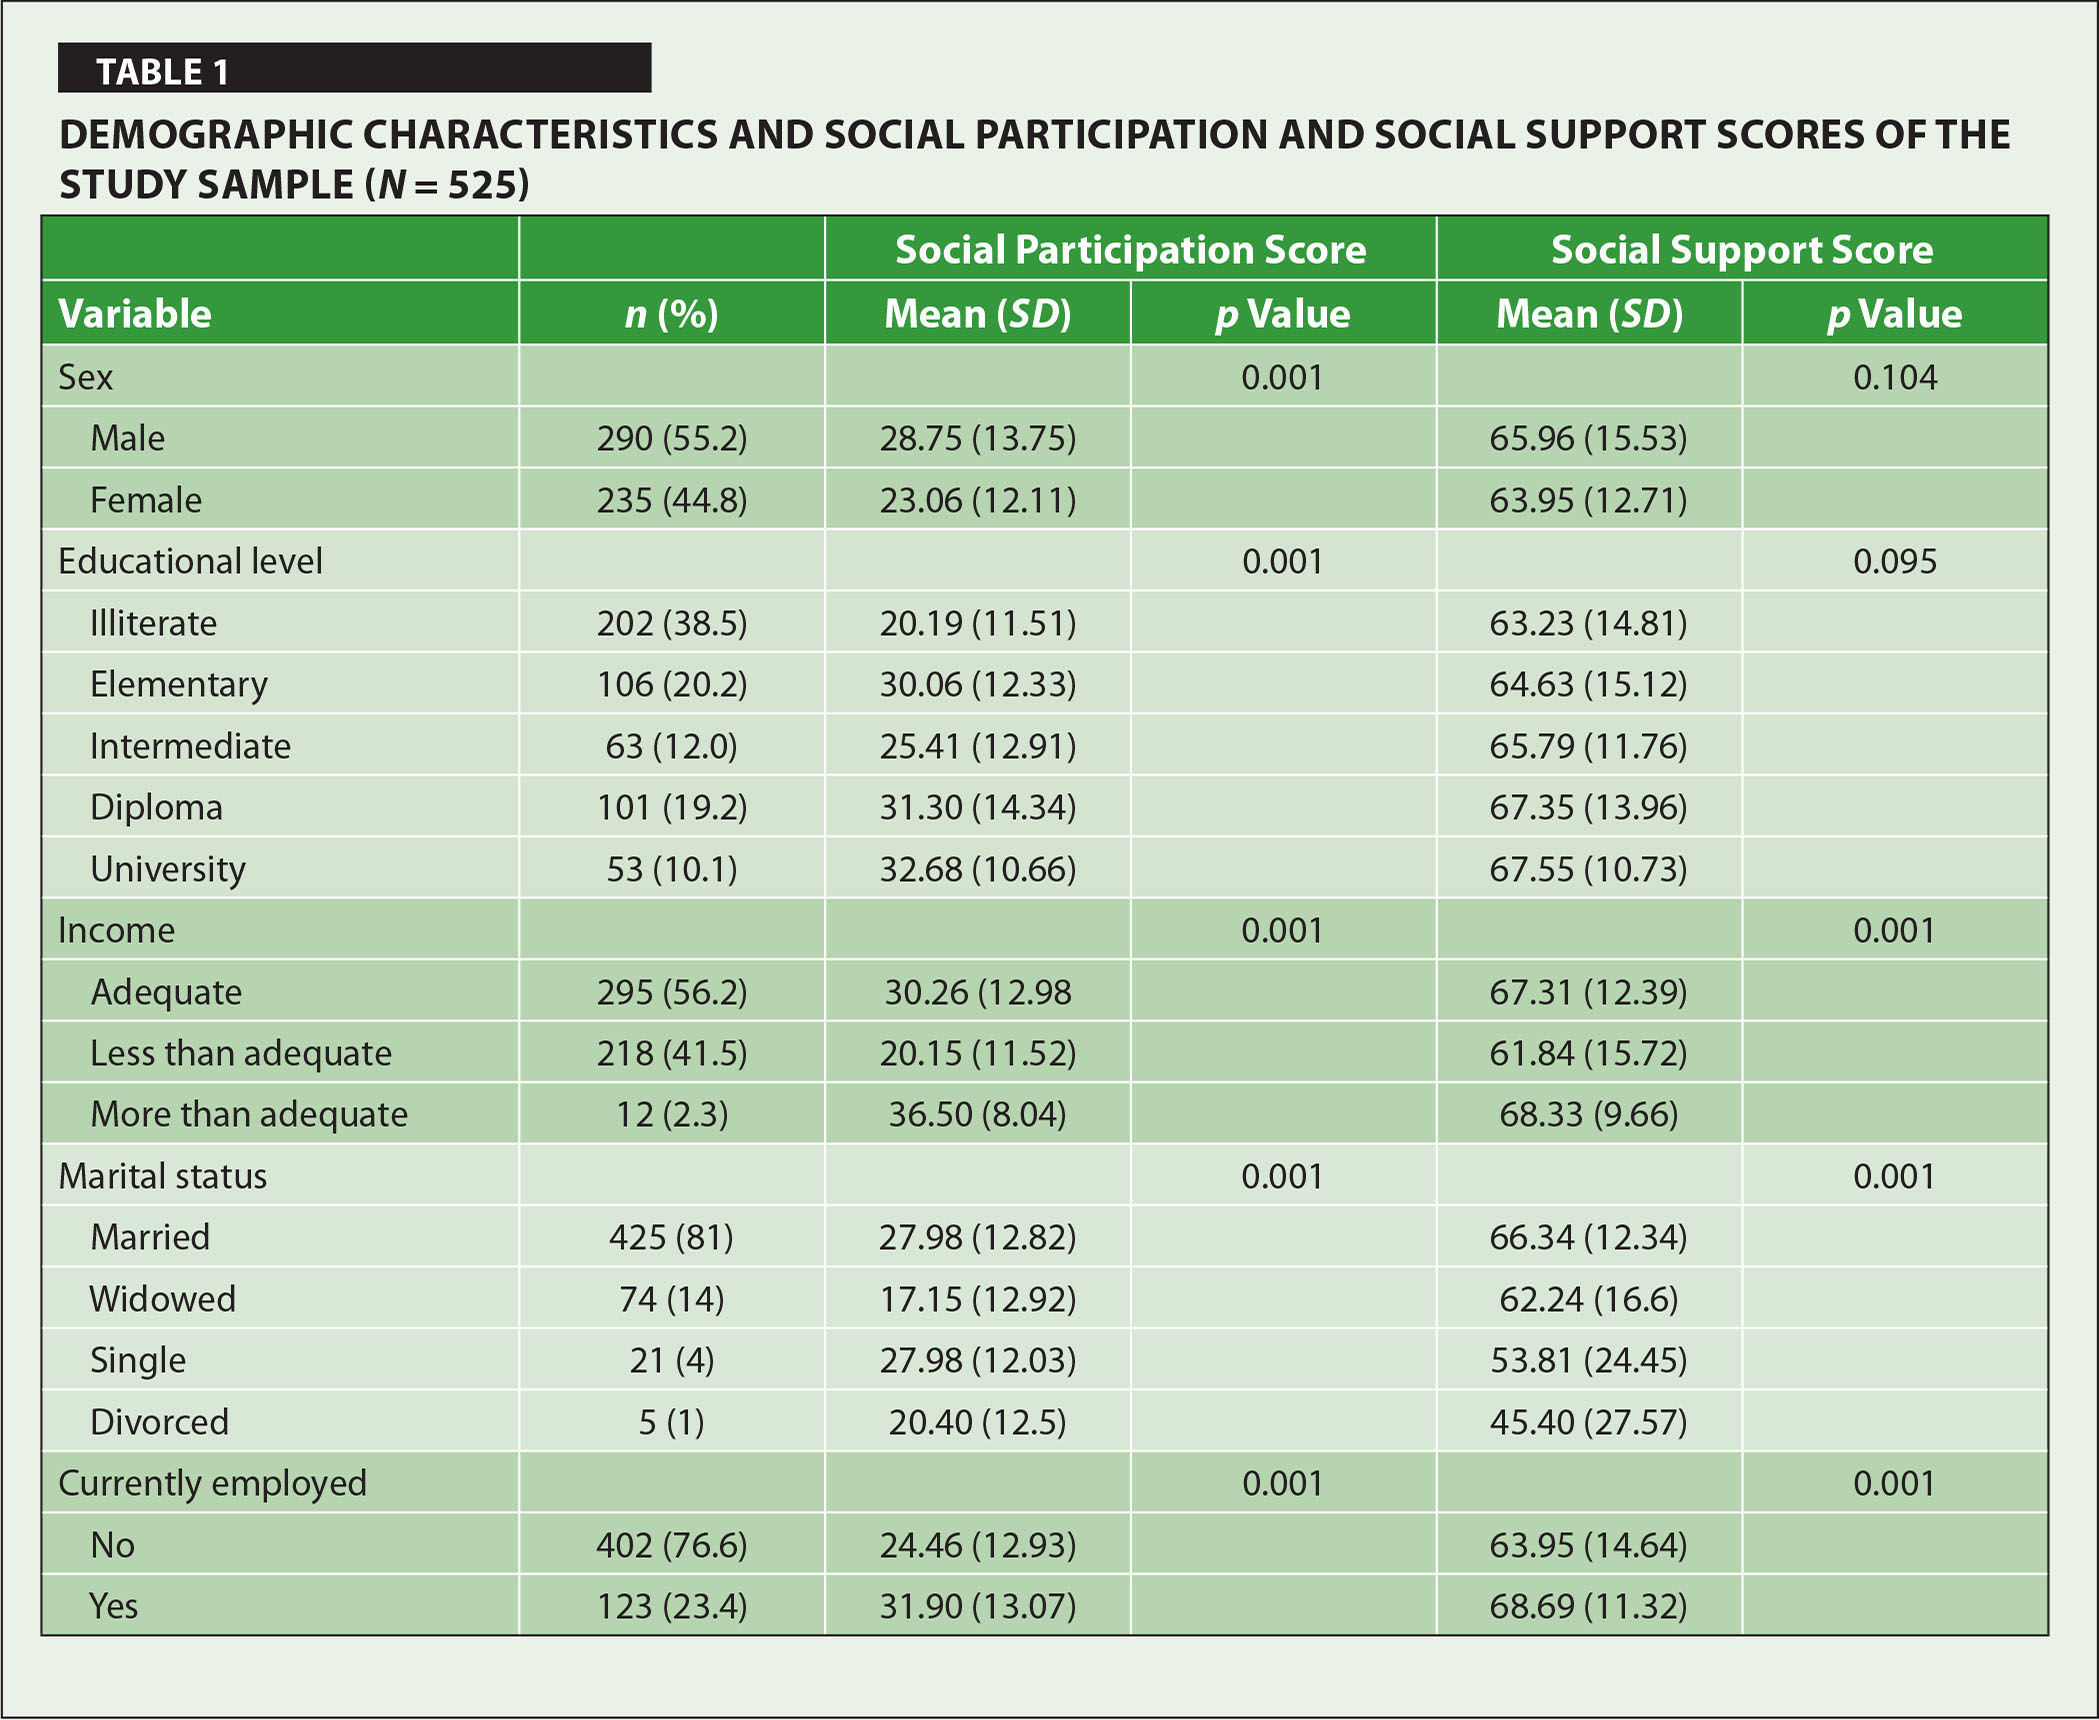 Demographic Characteristics and Social Participation and Social Support Scores of the Study Sample (N = 525)